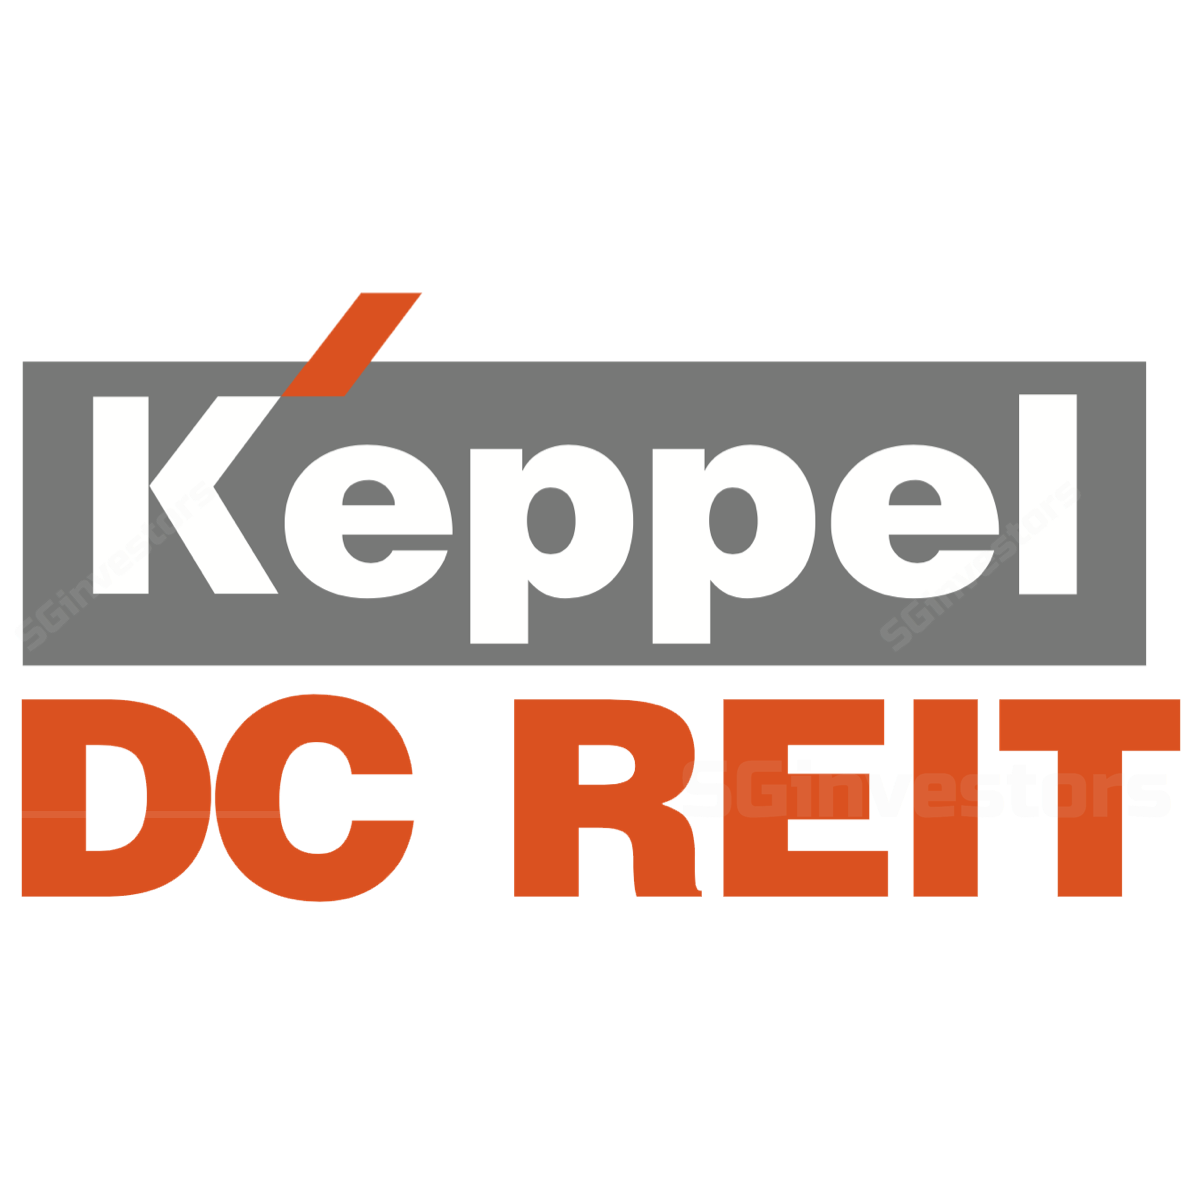 Keppel DC REIT - OCBC Investment 2018-05-07: King Of The Land